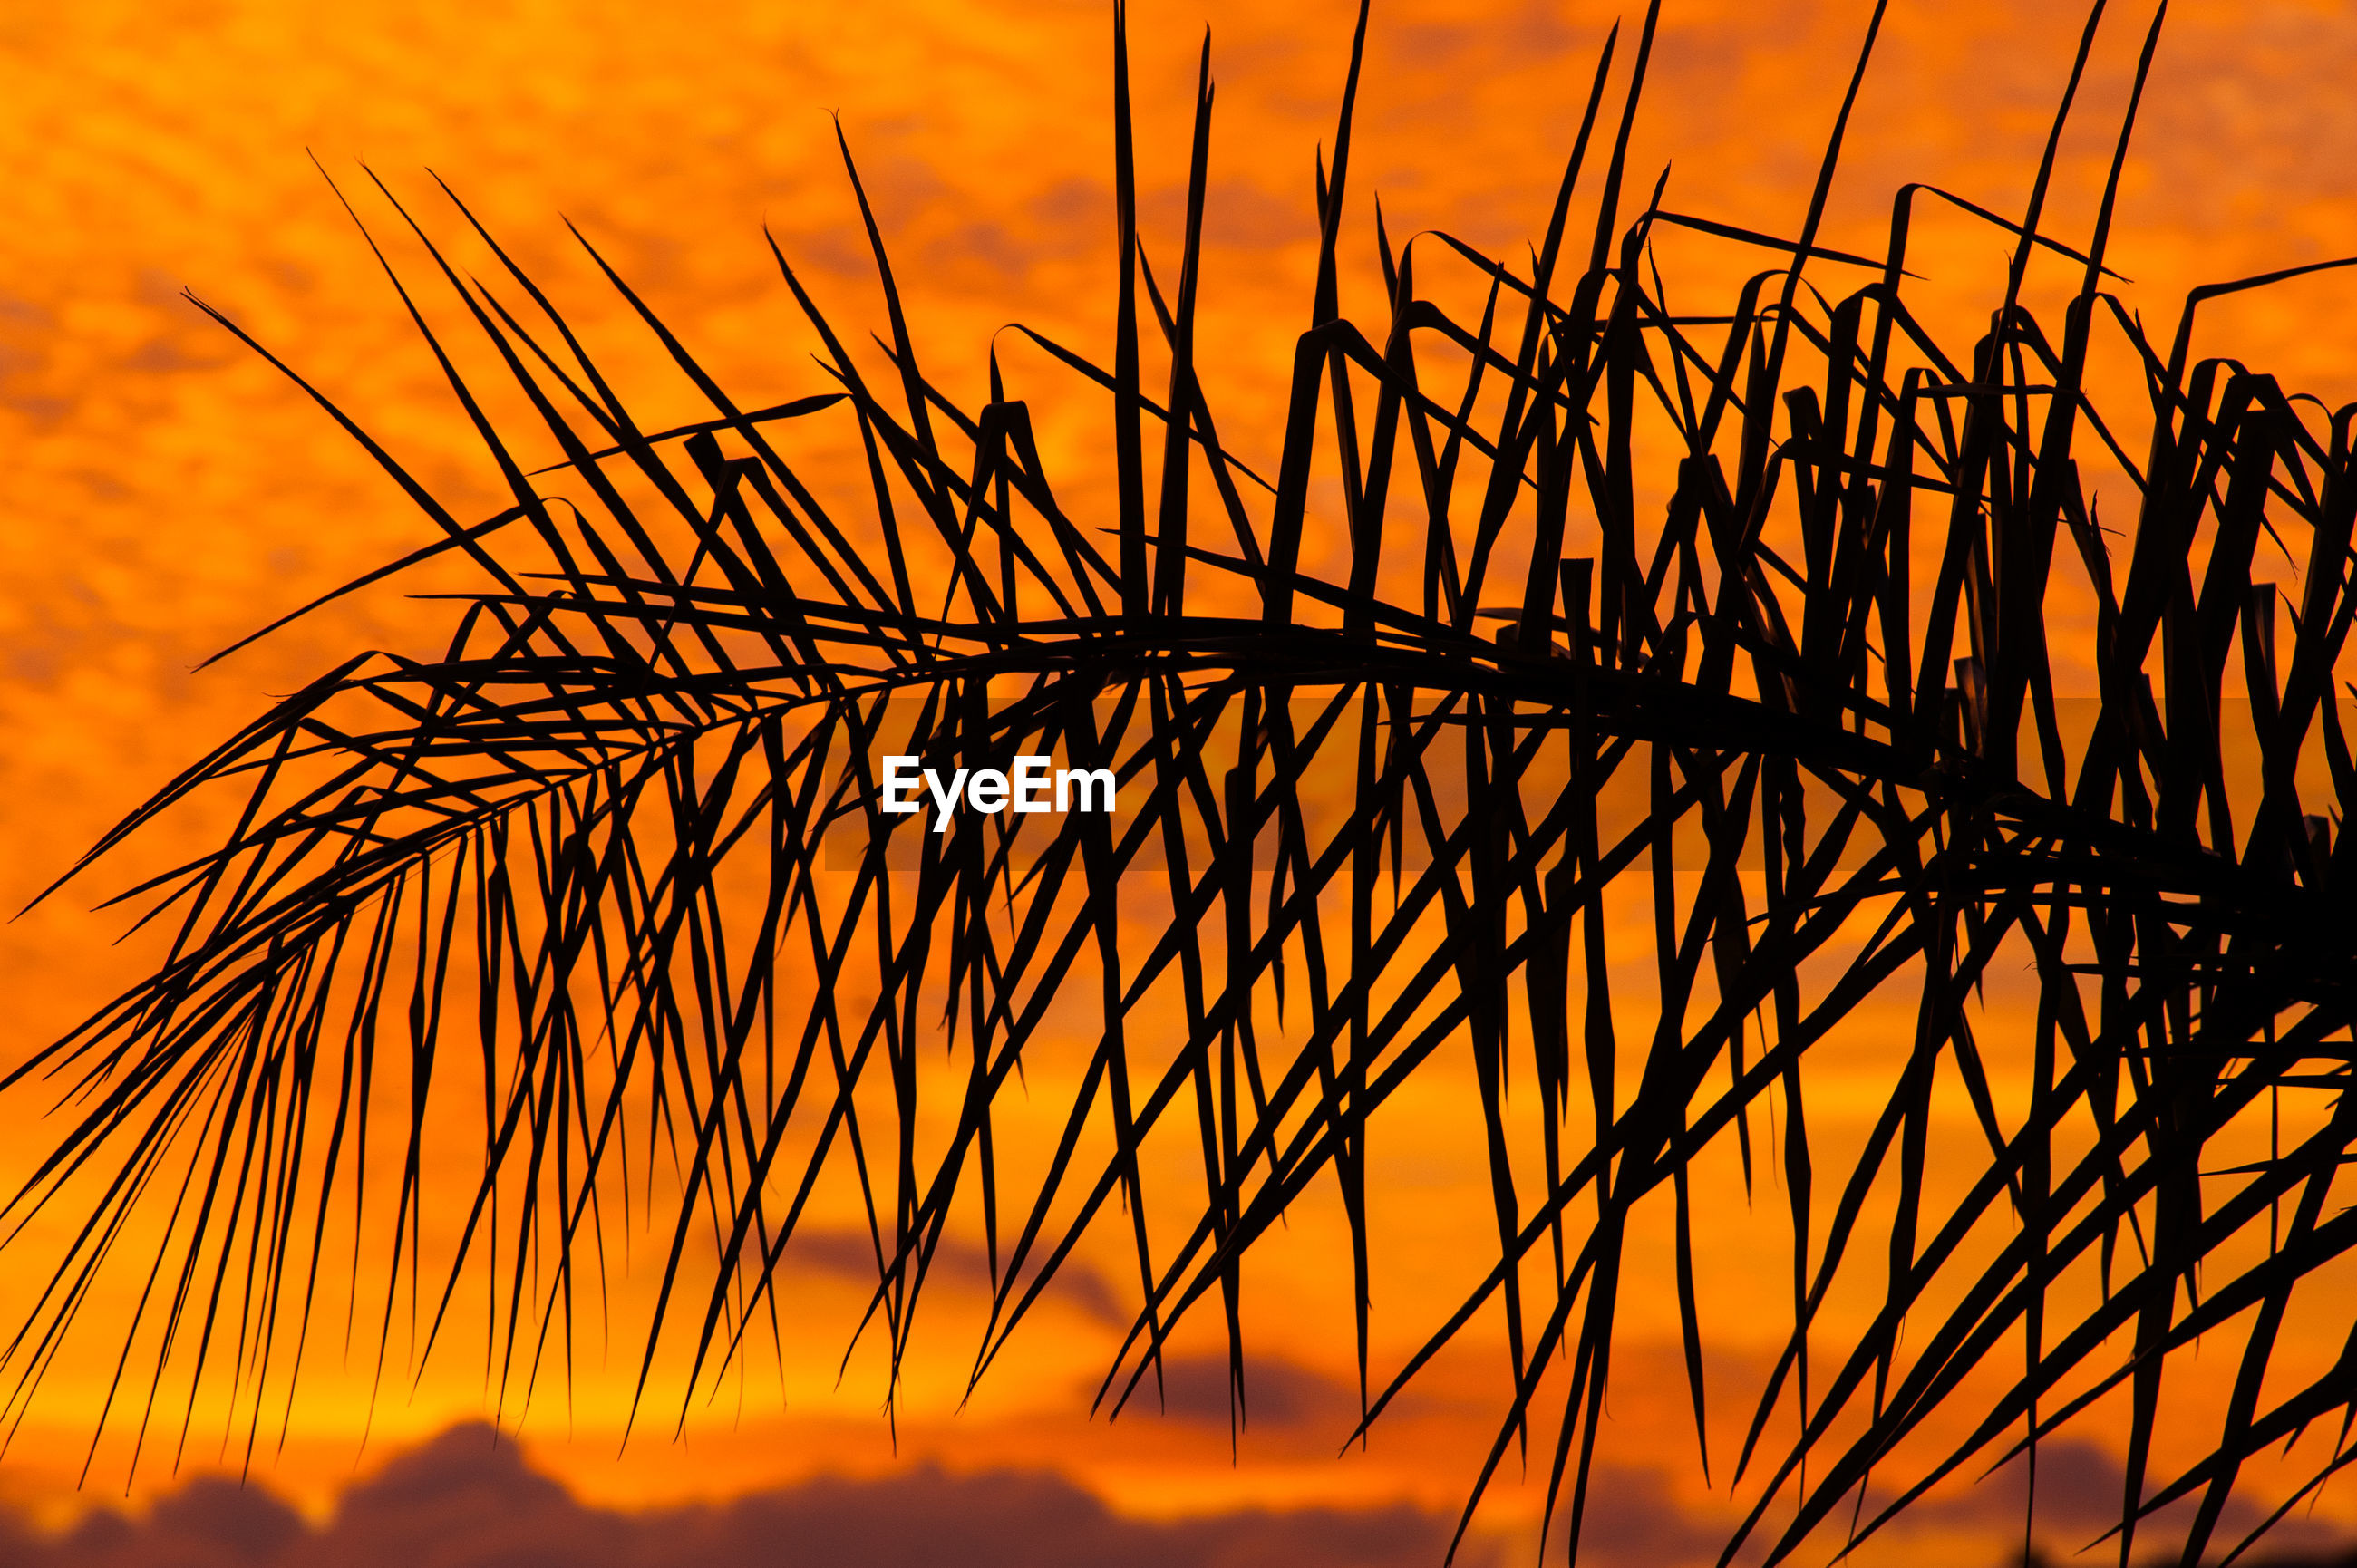 CLOSE-UP OF SILHOUETTE GRASS AGAINST ORANGE SKY